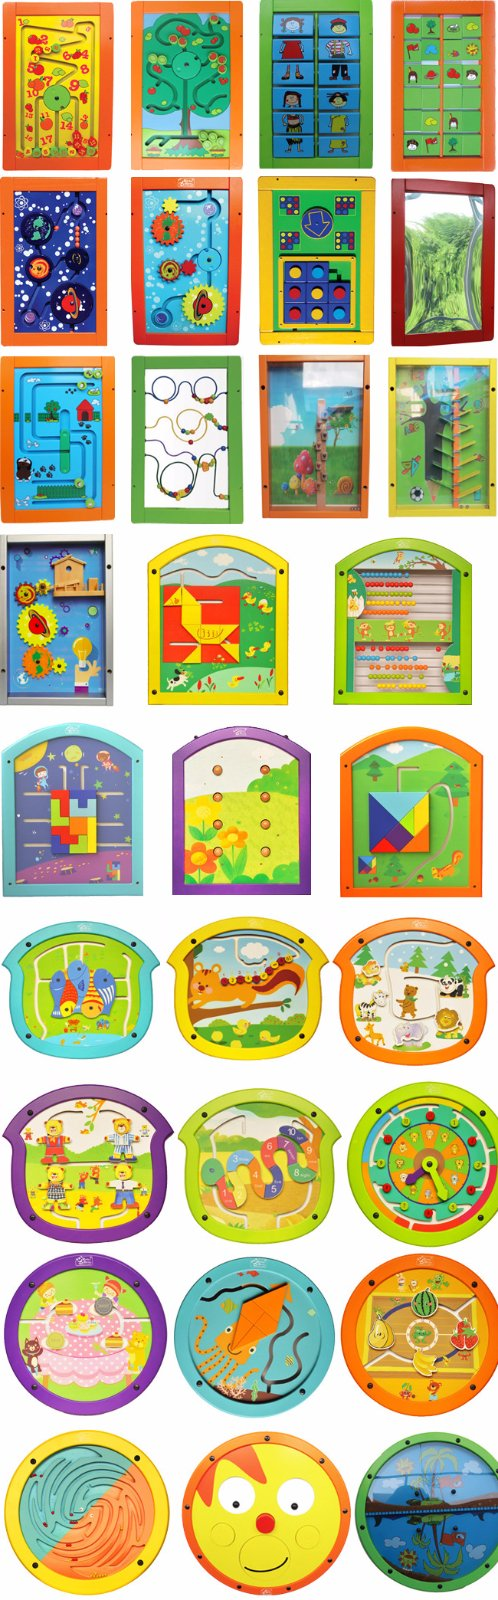 Colorful Wood Play Board Mounted on Wall for Children